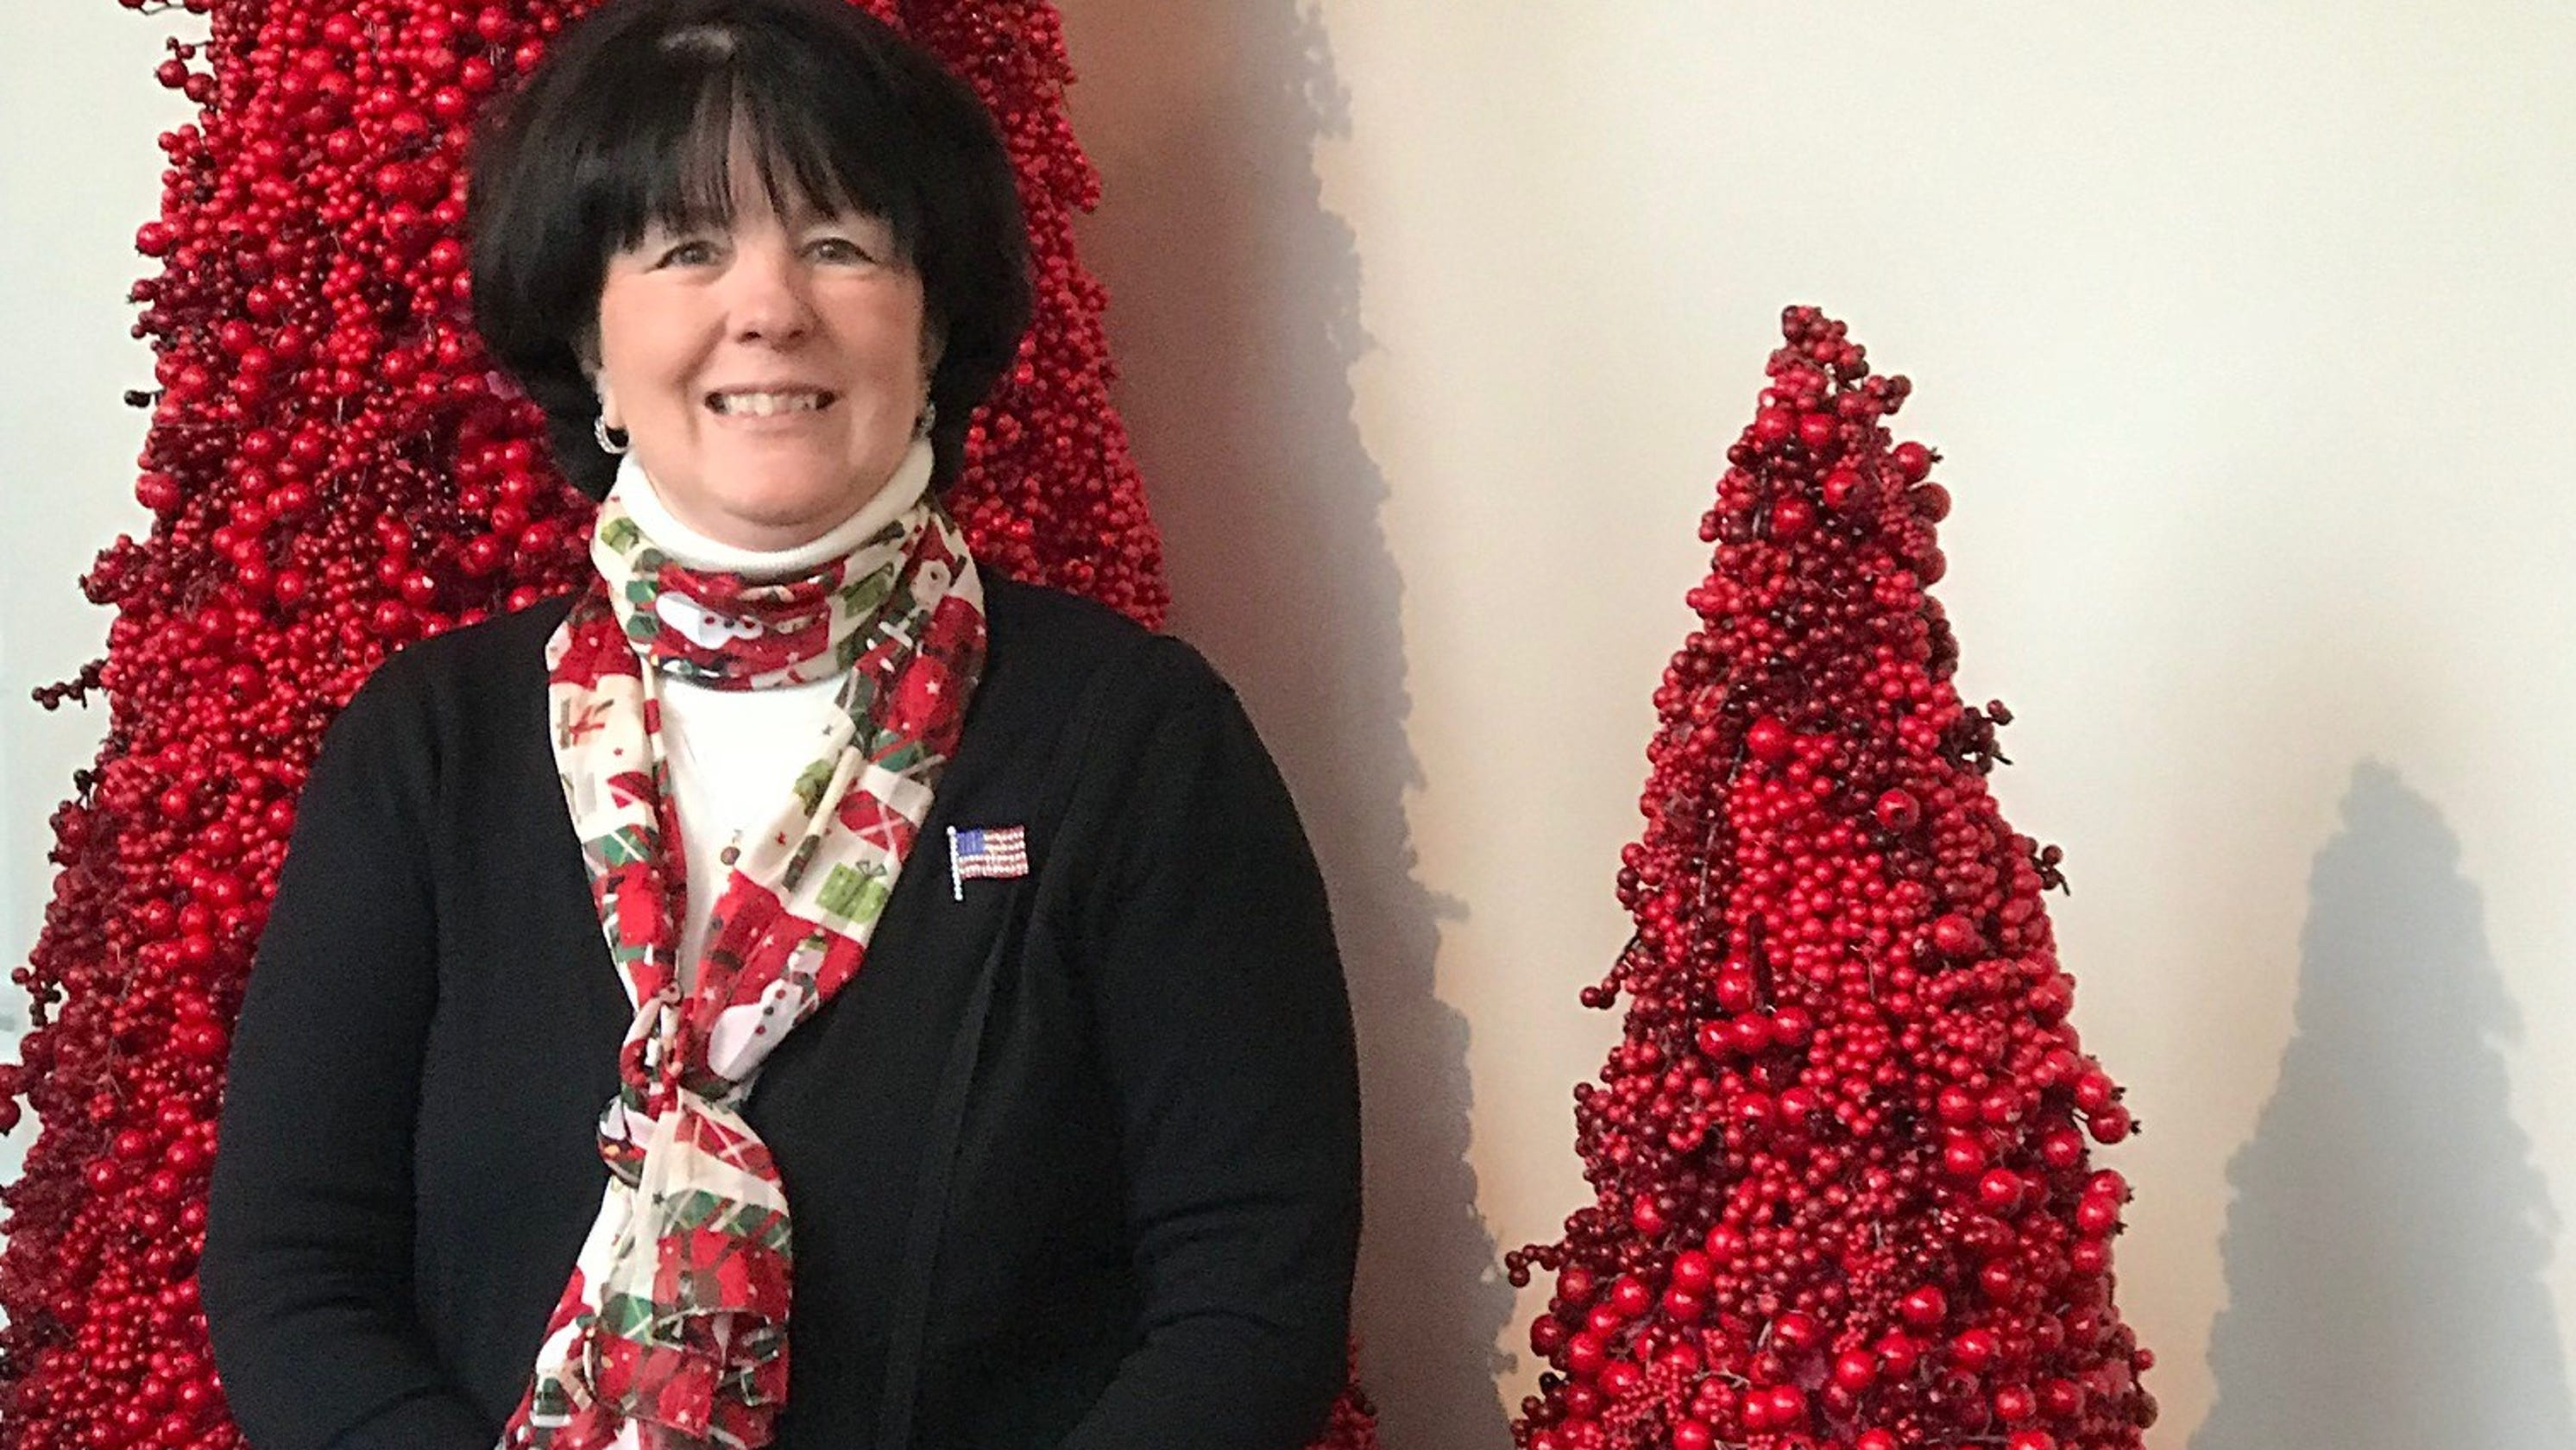 bangert lafayette gold star mom helps decorate white house for christmas